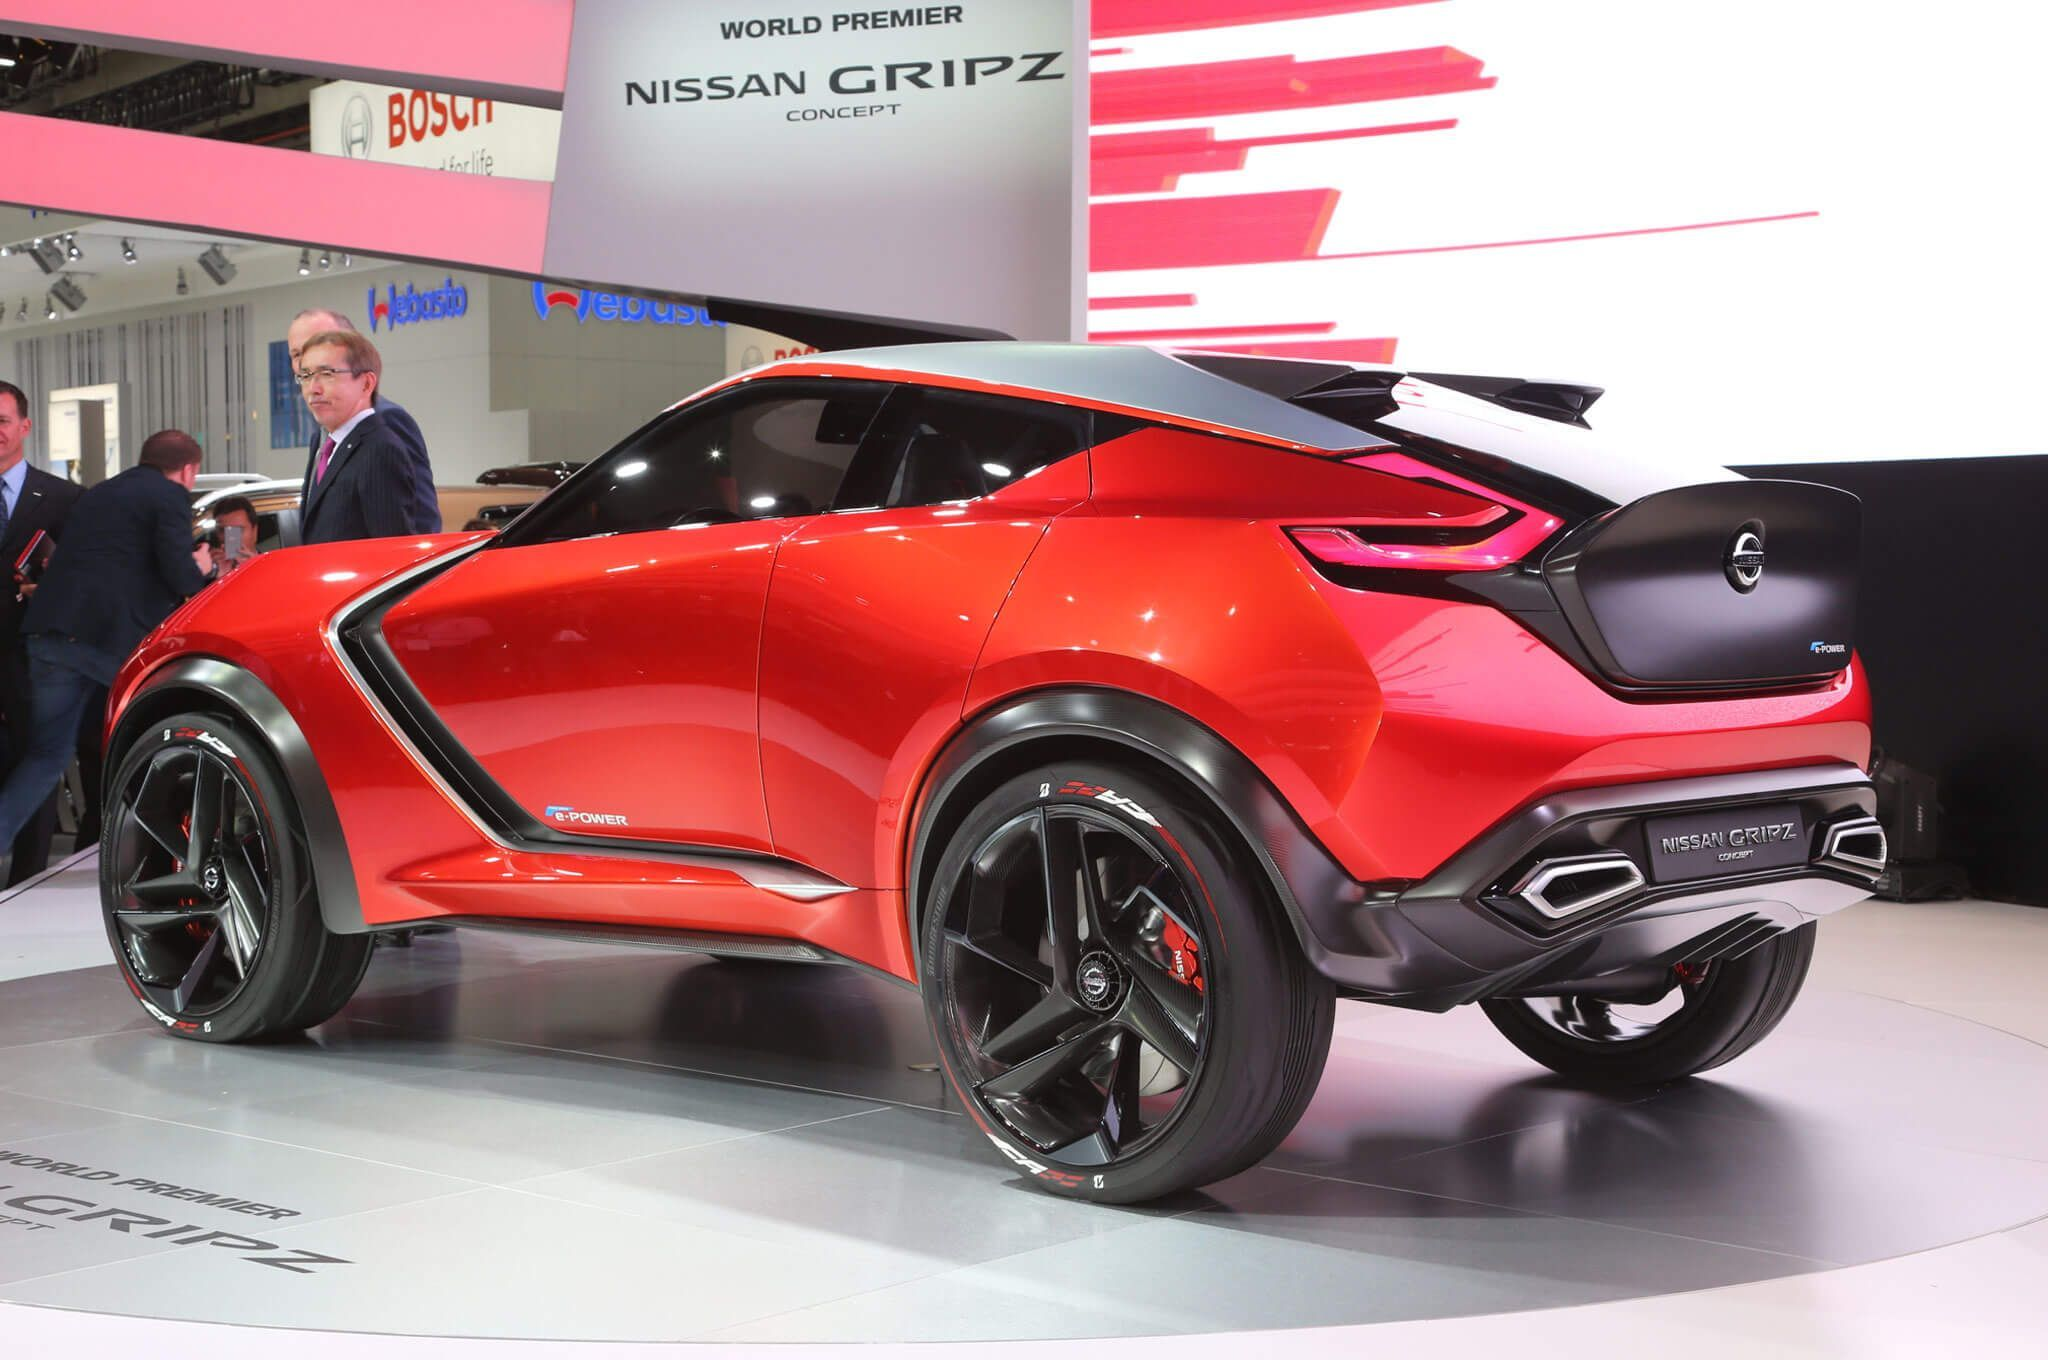 2020 Nissan Juke Exterior Review And Release Date Nissan Juke Nissan Car